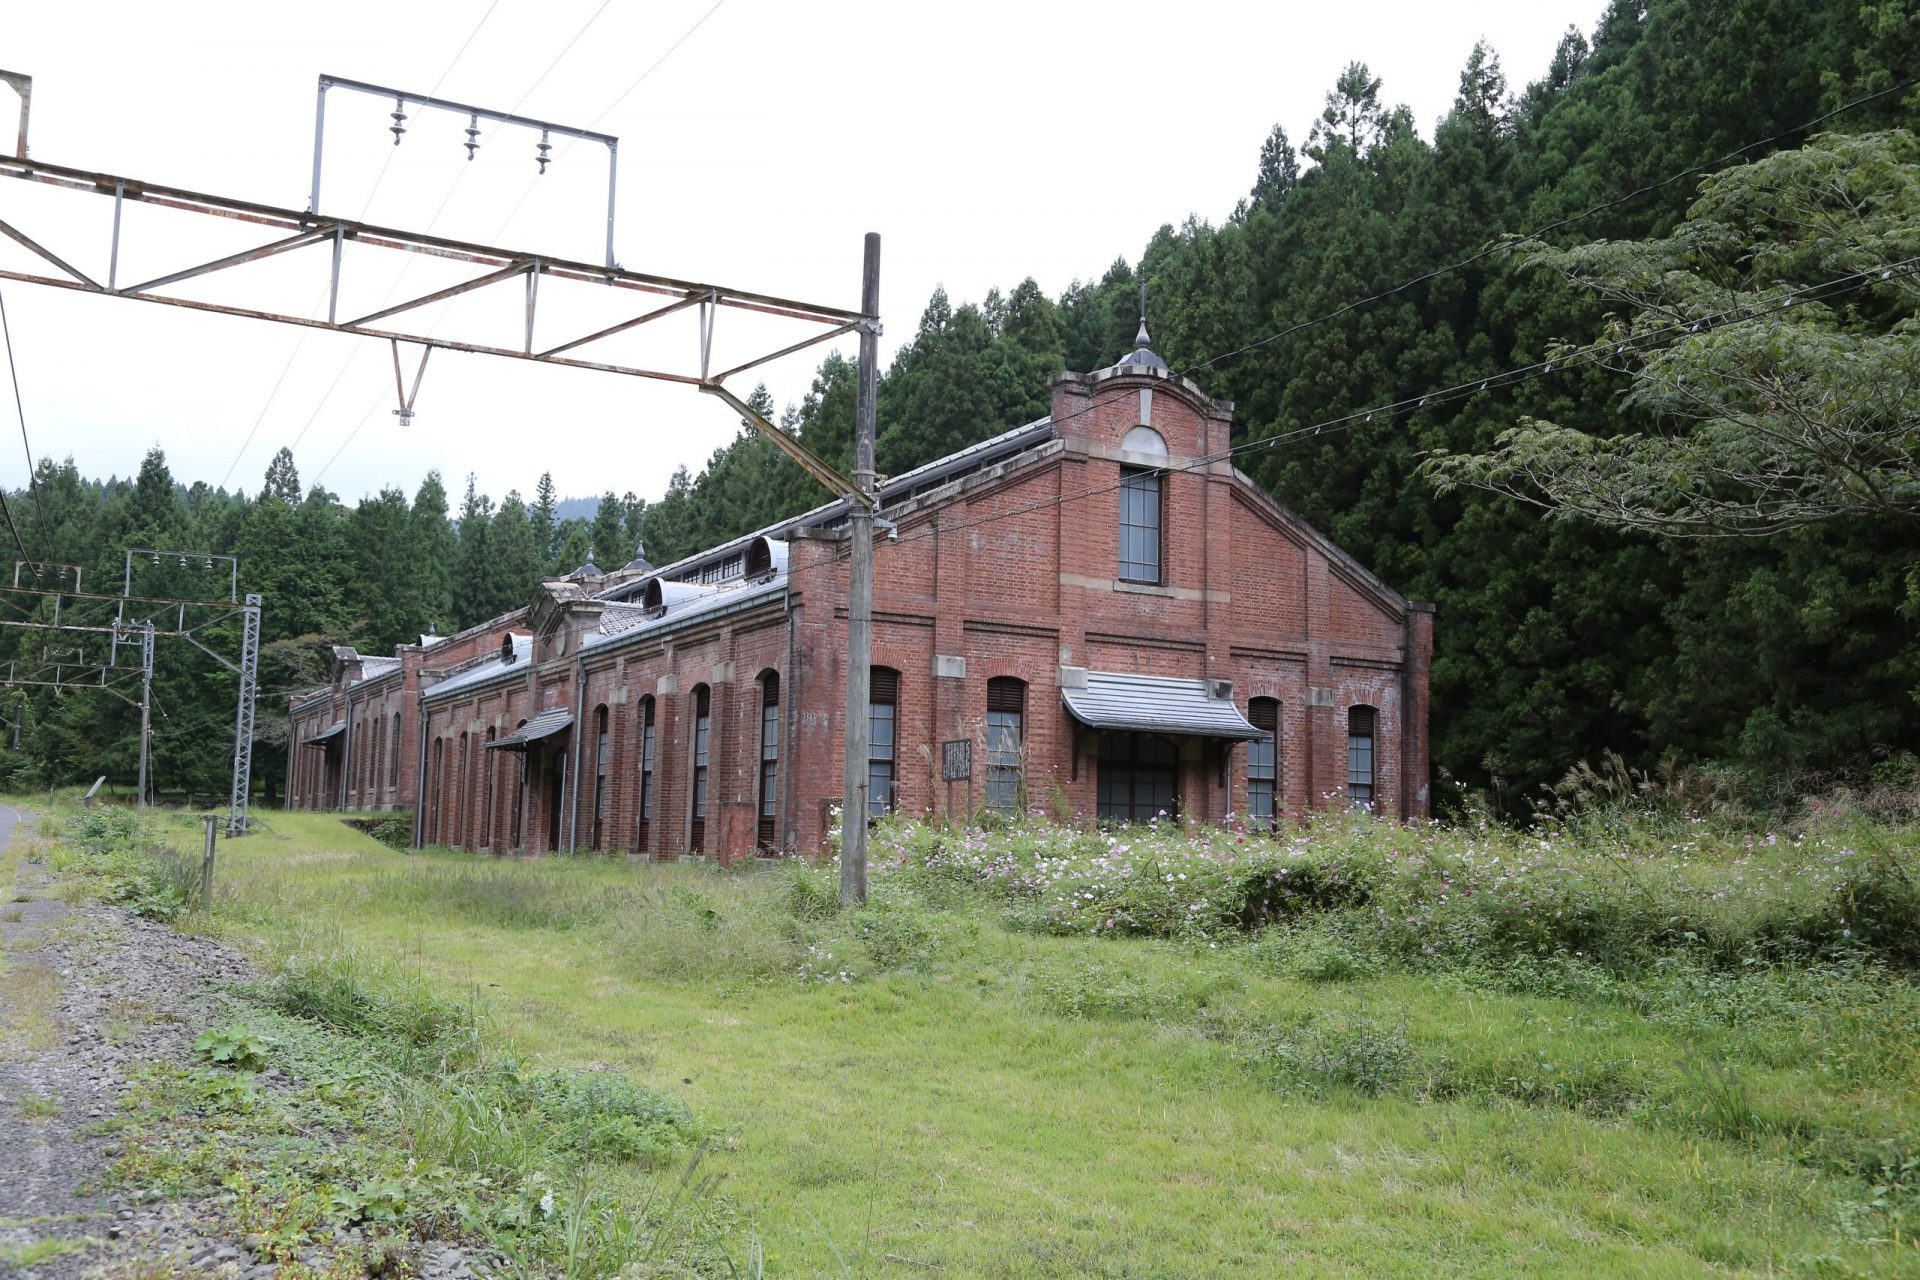 Two Transformer Stations